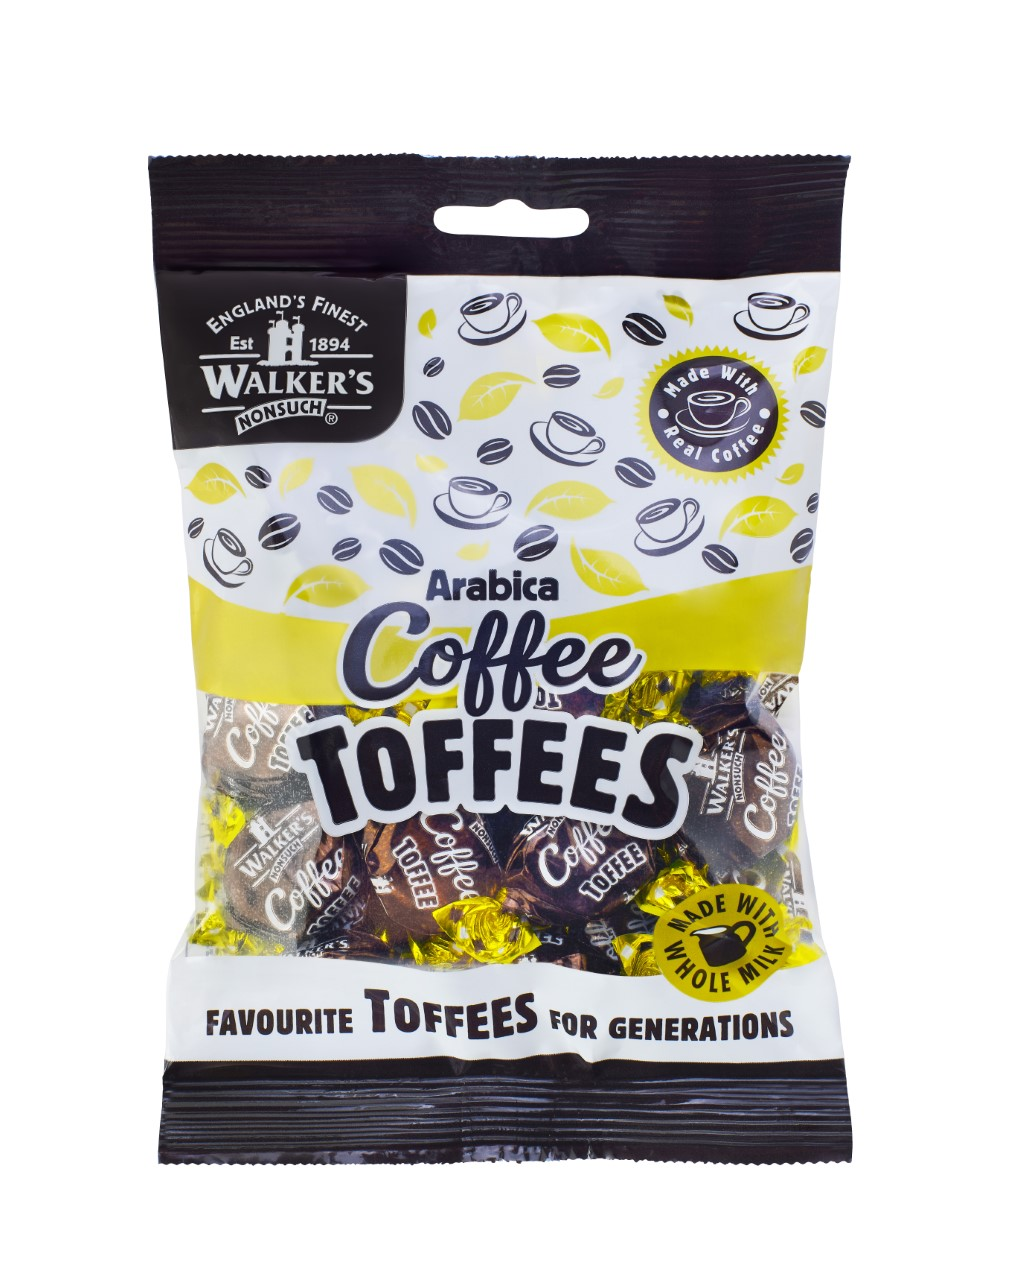 Walker's Nonsuch introduces new Coffee Toffee